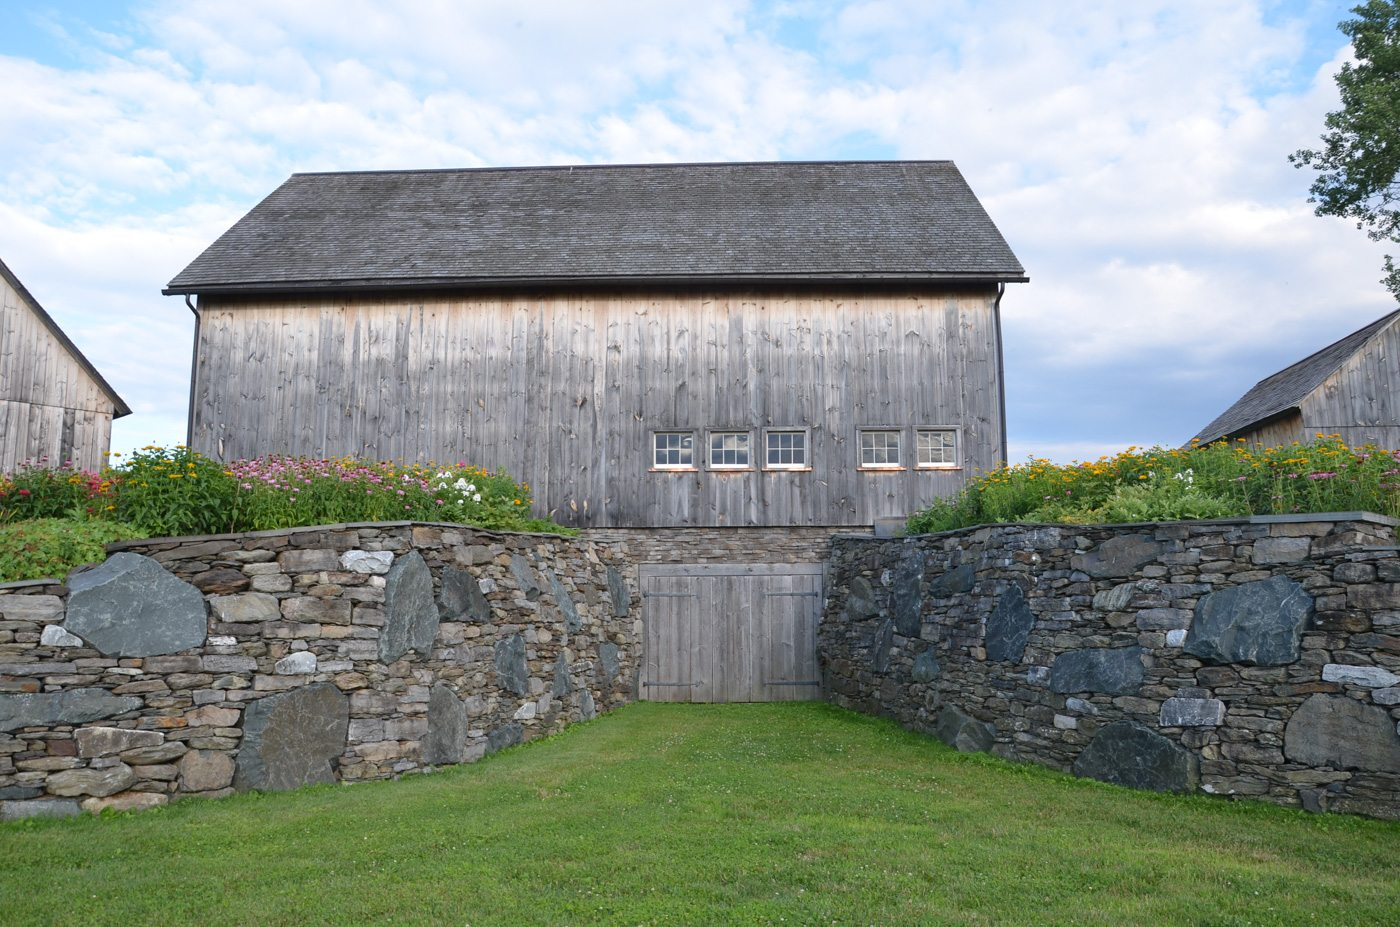 German Barn stone wall, 2014, Photograph by Constance Kheel